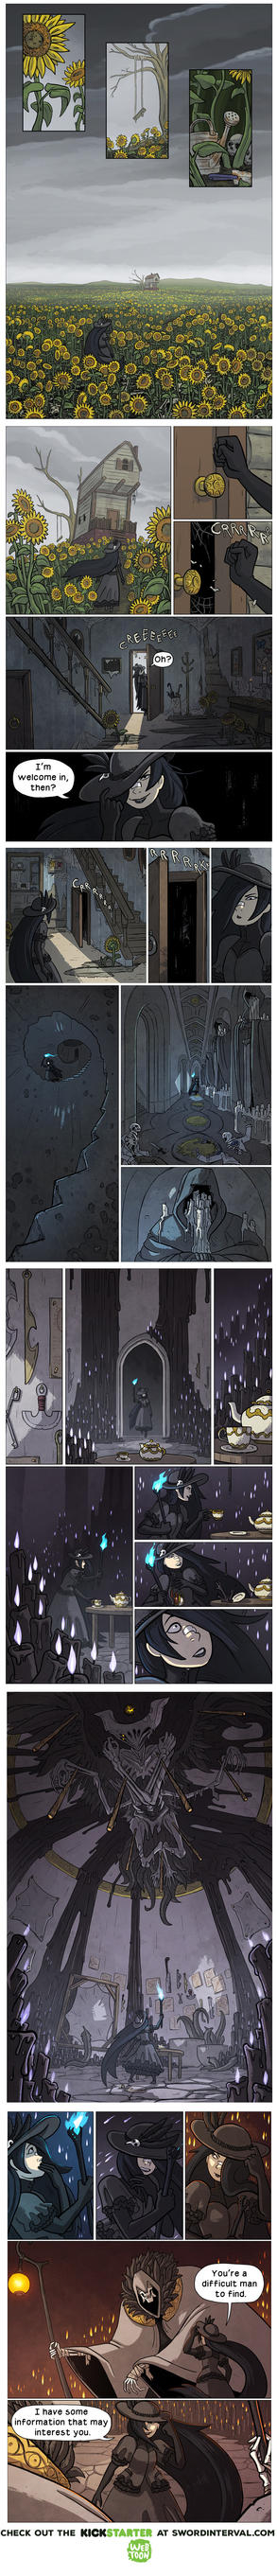 The Sword Interval - Volume 1 Epilogue by Beanjamish